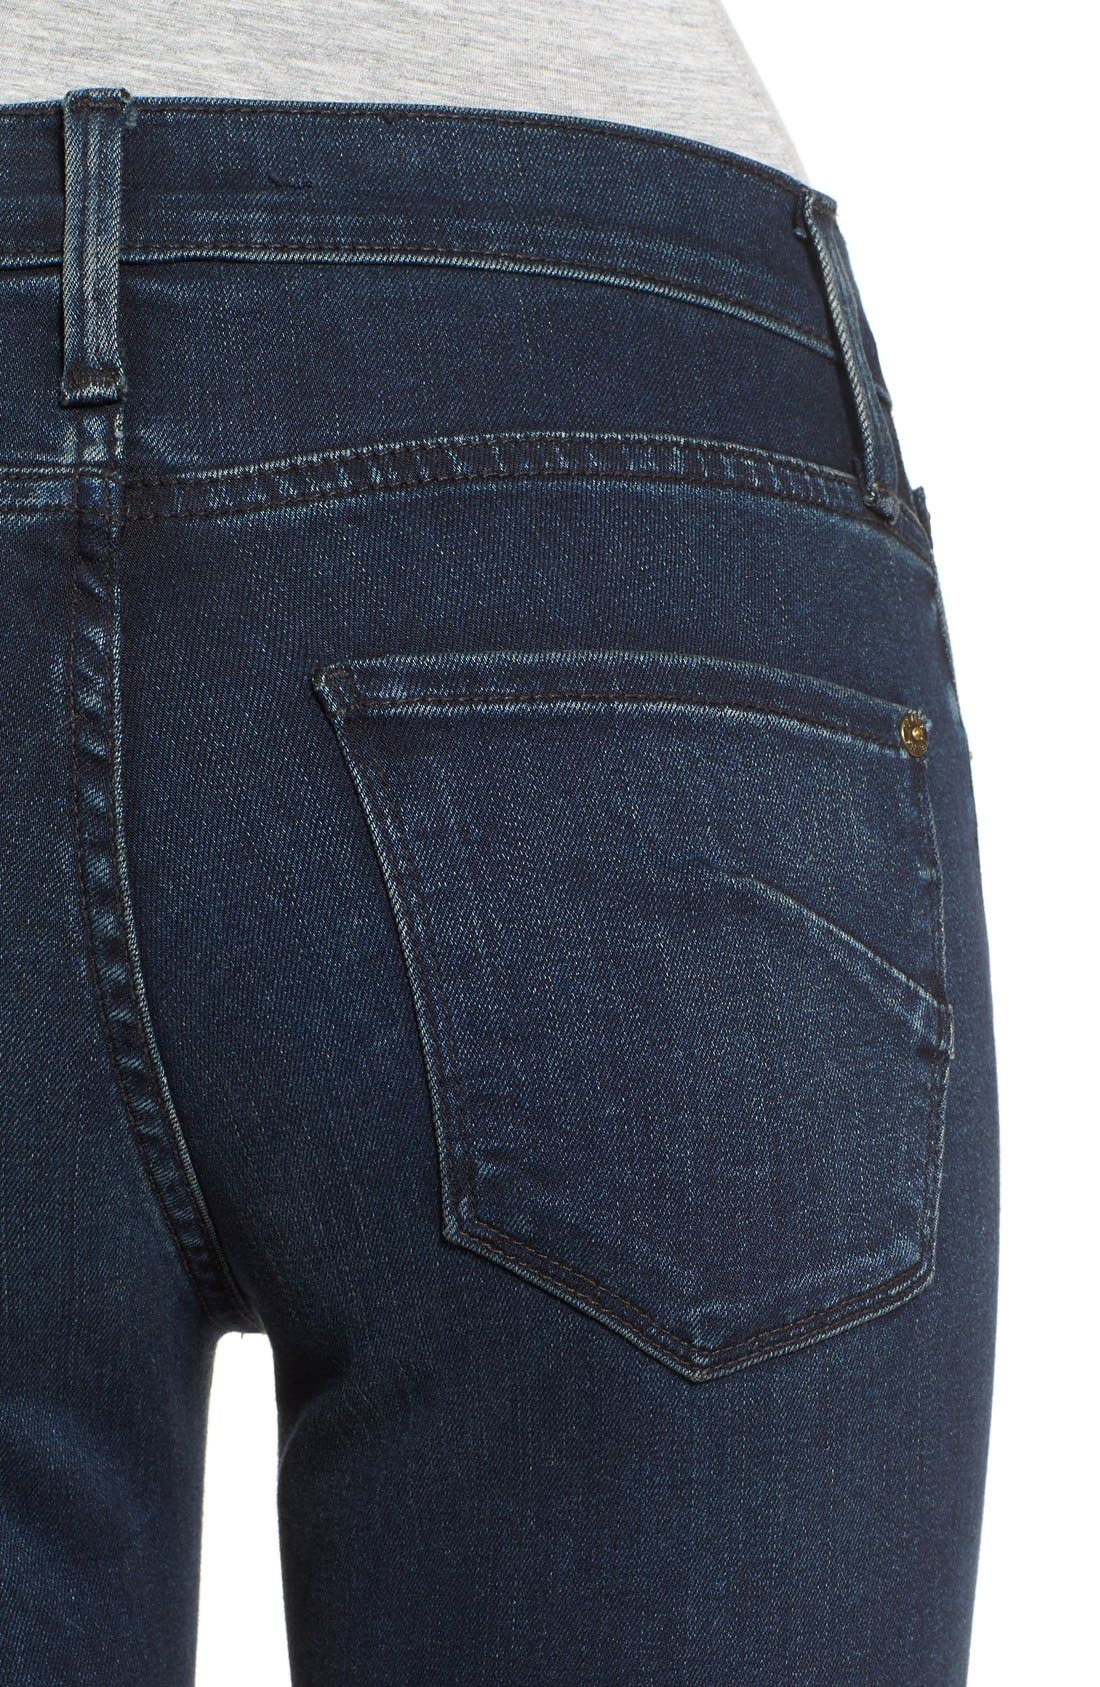 Alternate Image 4  - James Jeans Ankle Zip Skinny Jeans